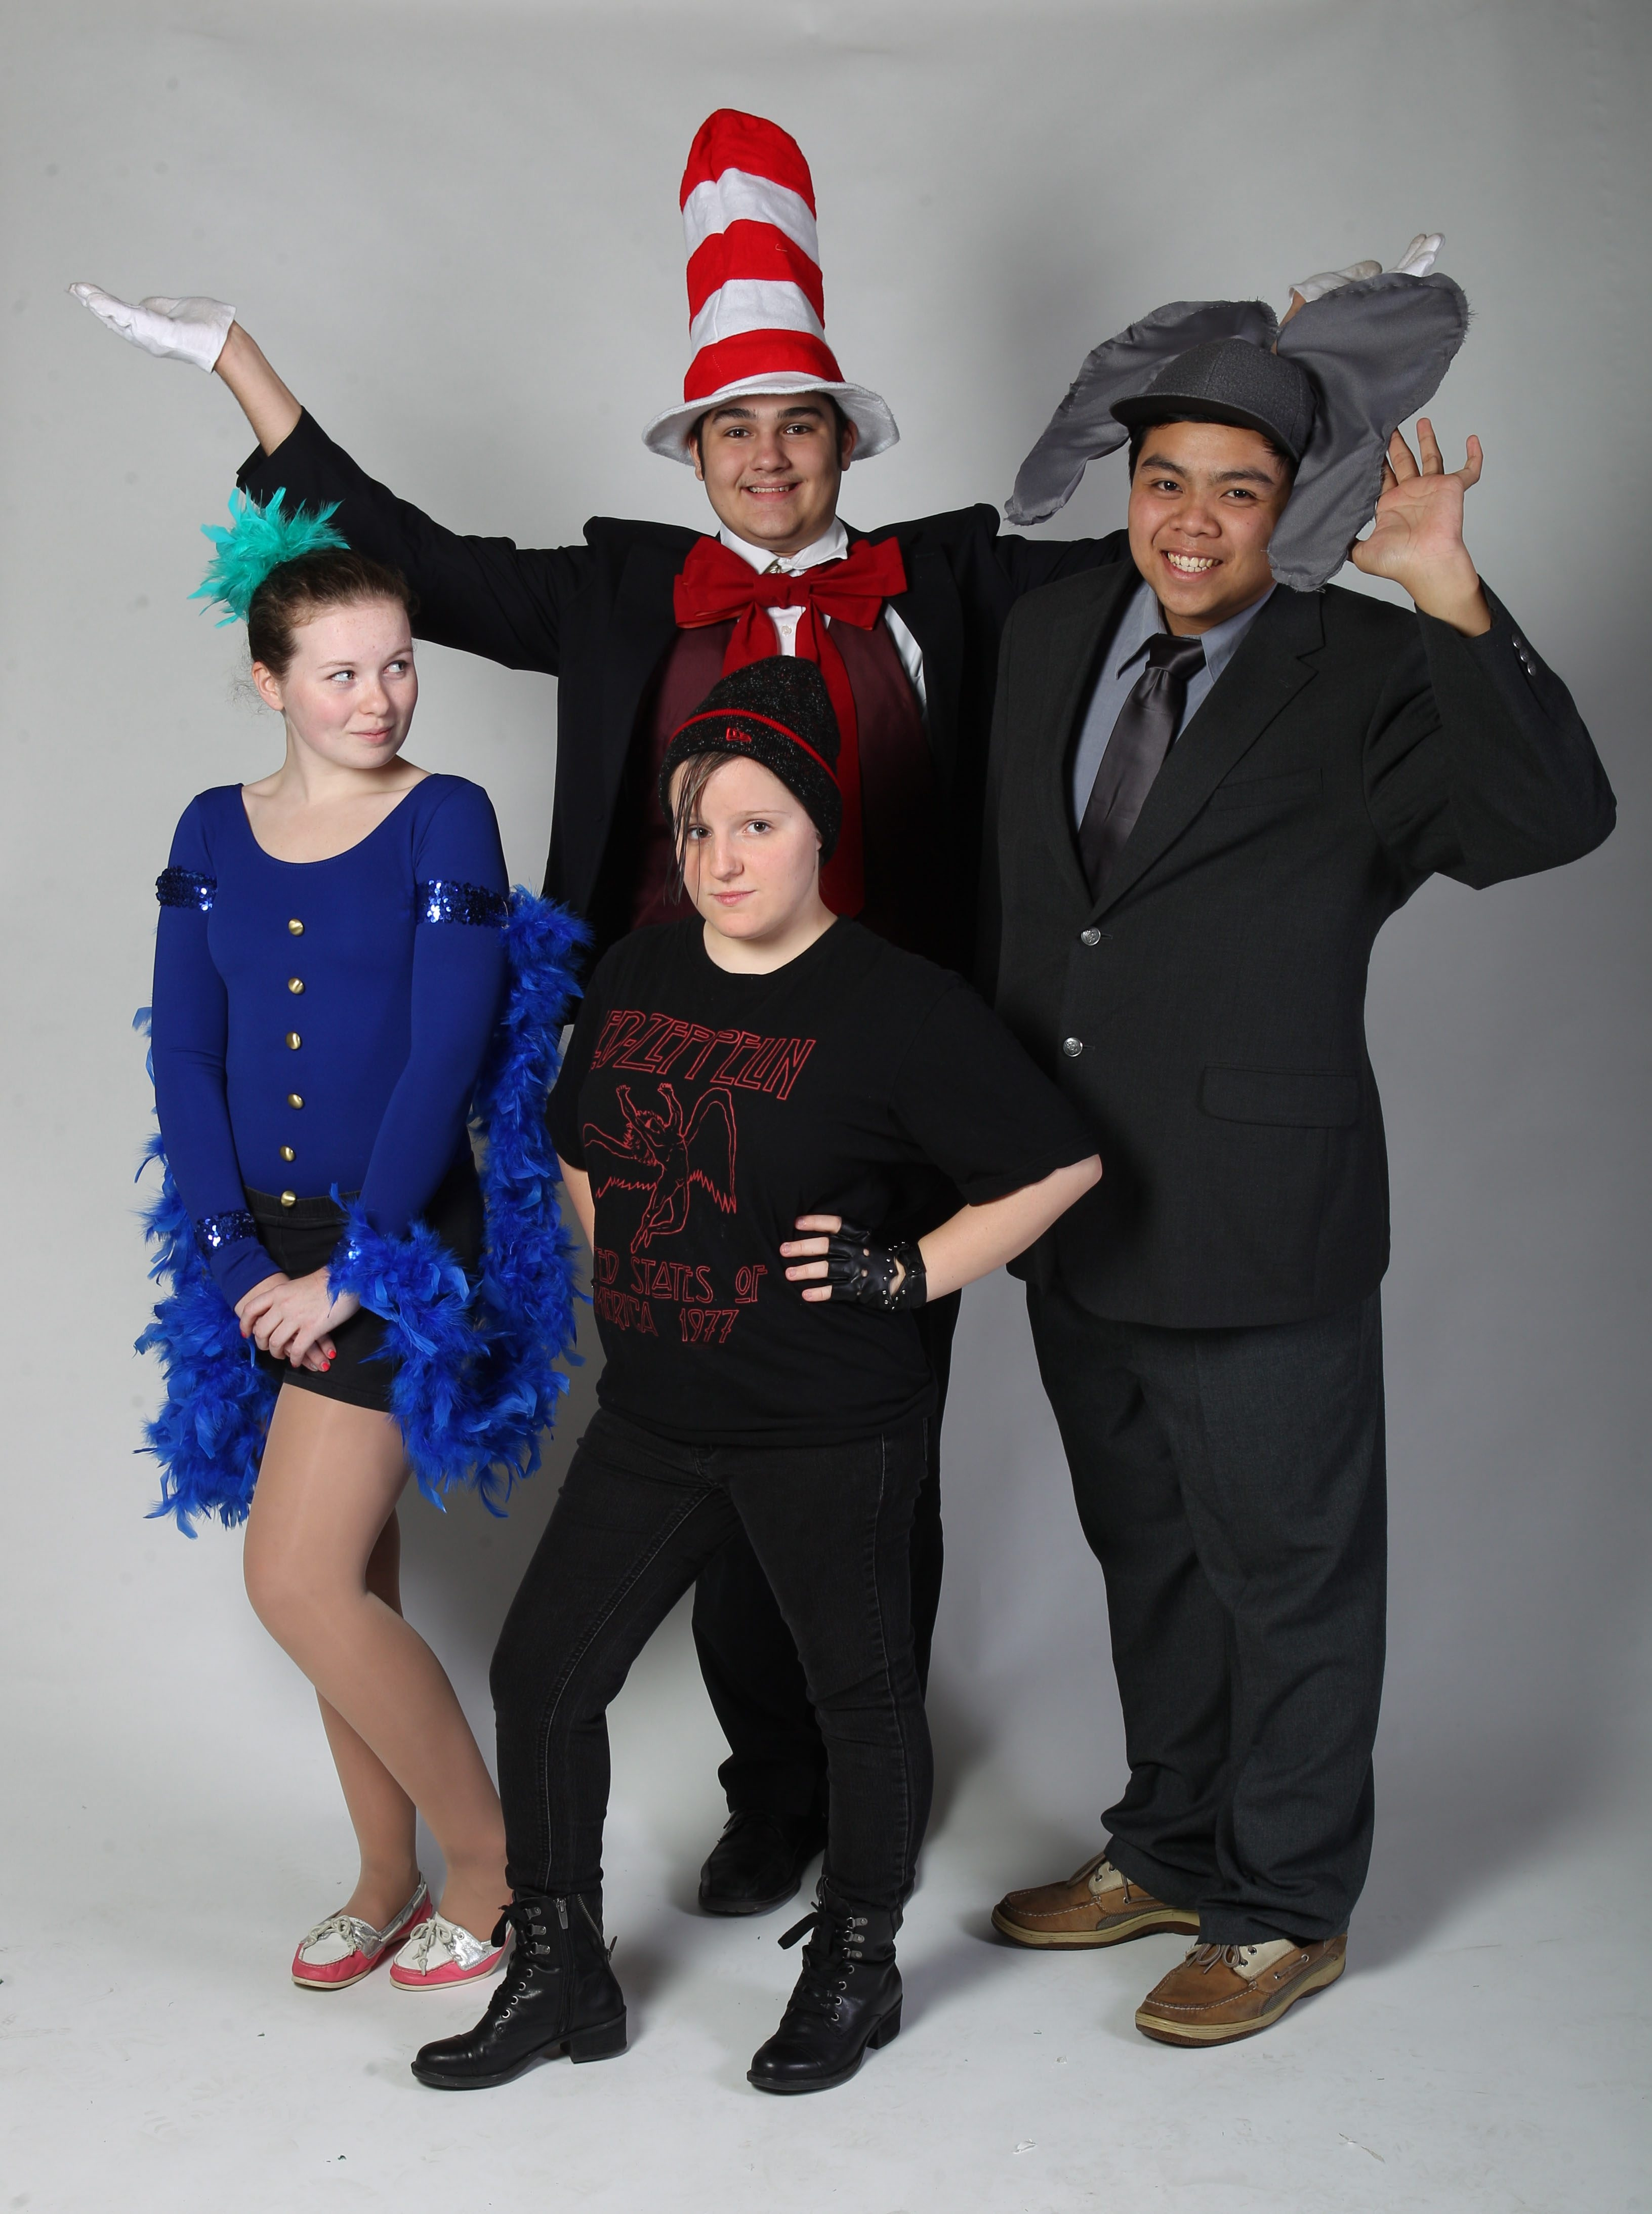 Bishop Timon-St. Jude High School is presenting 'Seussical,'  November 1-3 at 601 McKinley Parkway in Buffalo.  Cast members posed for a photo, Thursday, Oct. 24, 2013.From left are Emma English as Gertrude, Simona Lukasik as JoJo, Tim Keane as Cat in the Hat (behind) and Jon Nguyen as Horton.  (Sharon Cantillon/Buffalo News)